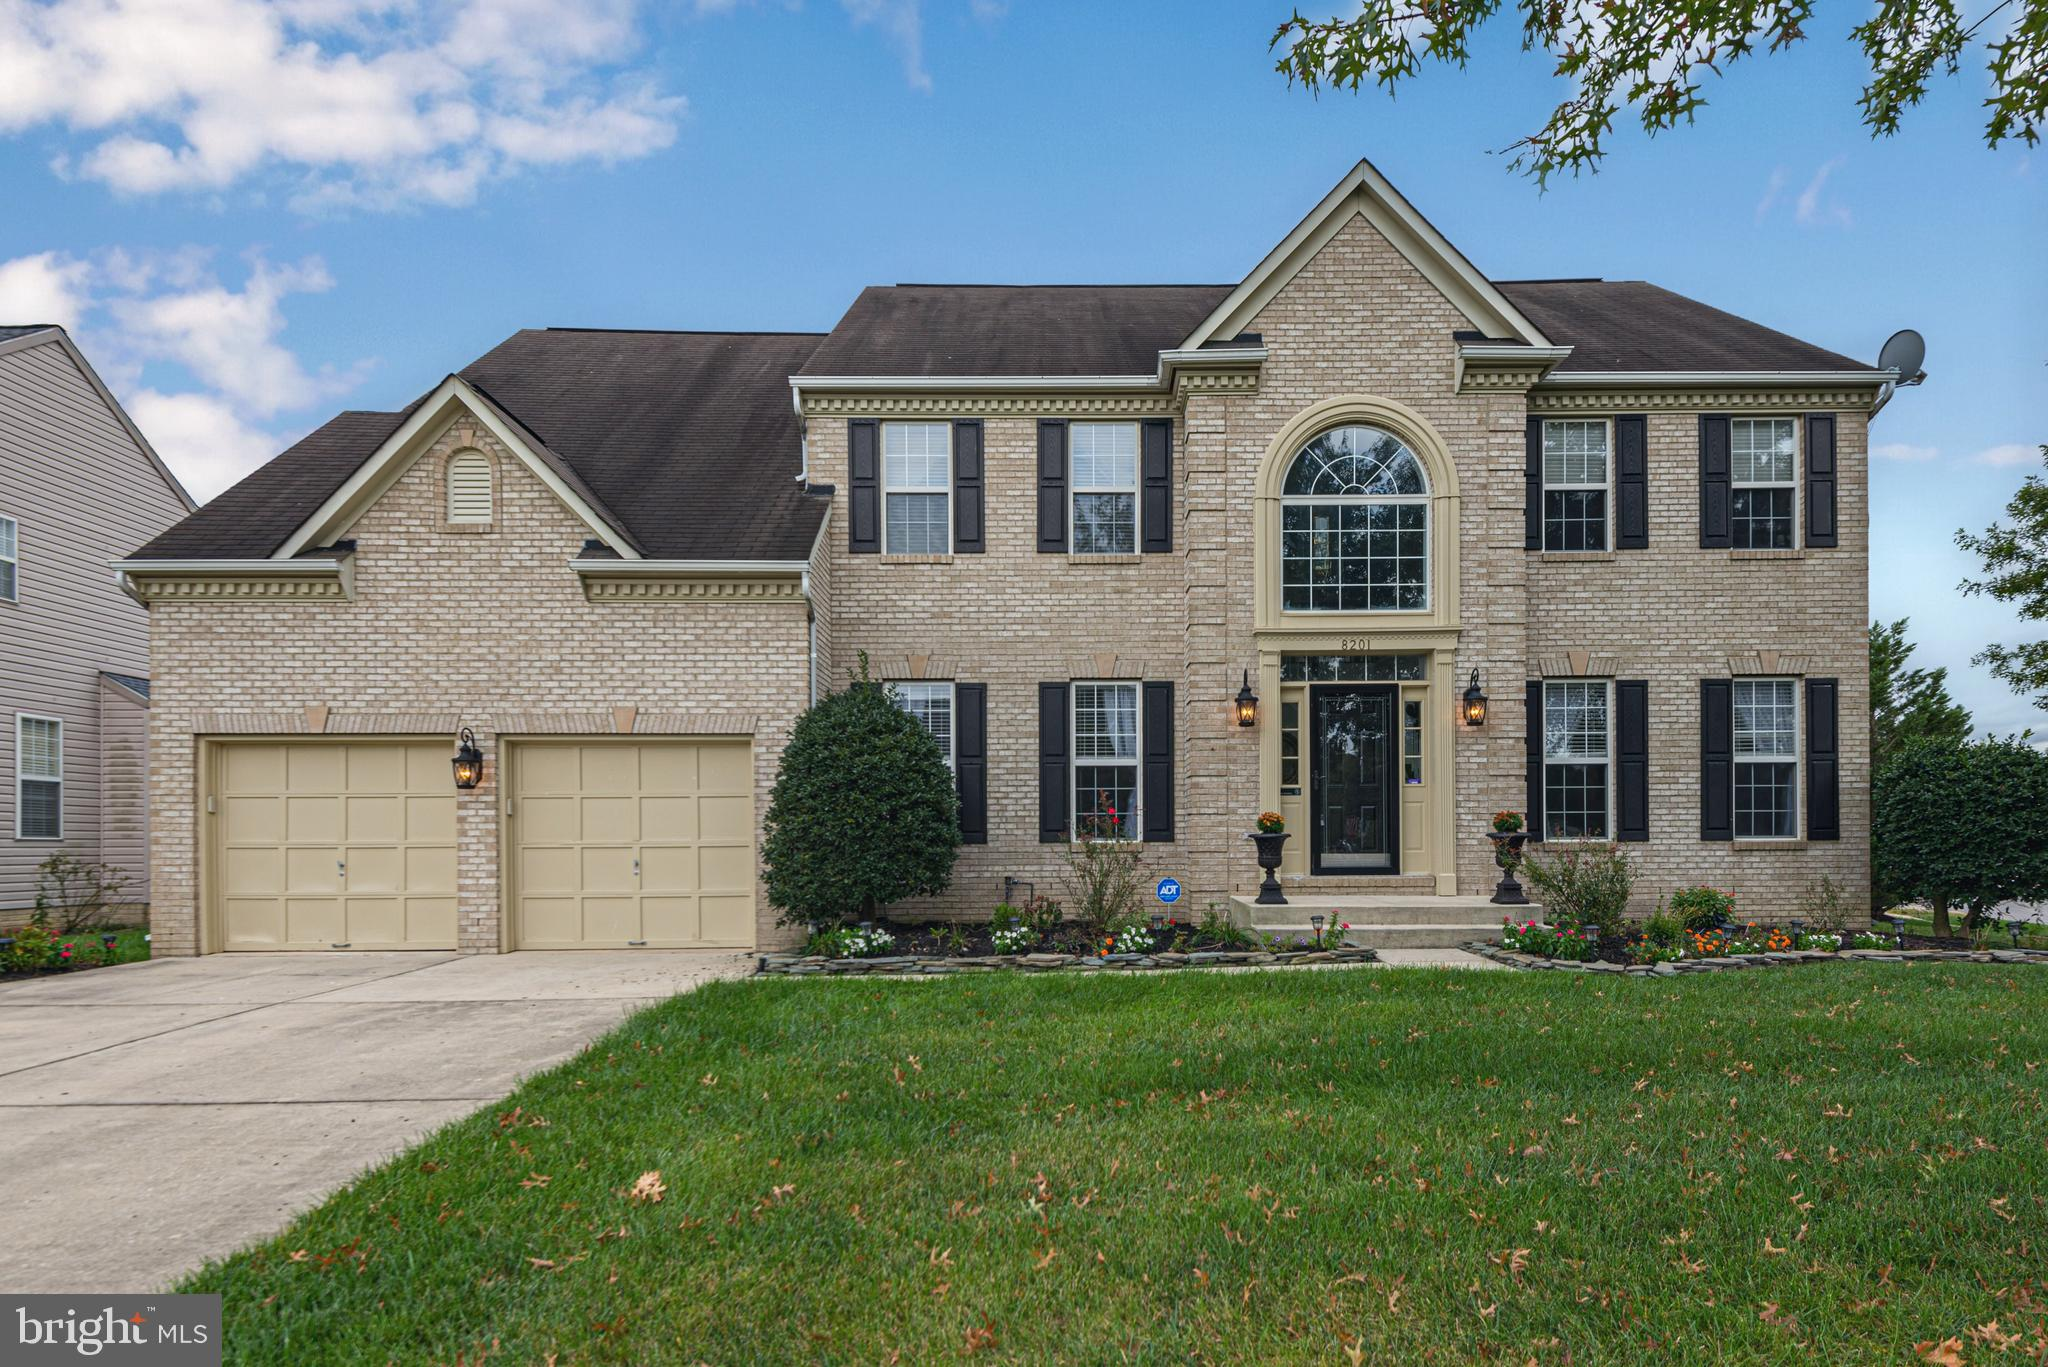 8201 RIVER RUN DRIVE, BOWIE, MD 20715